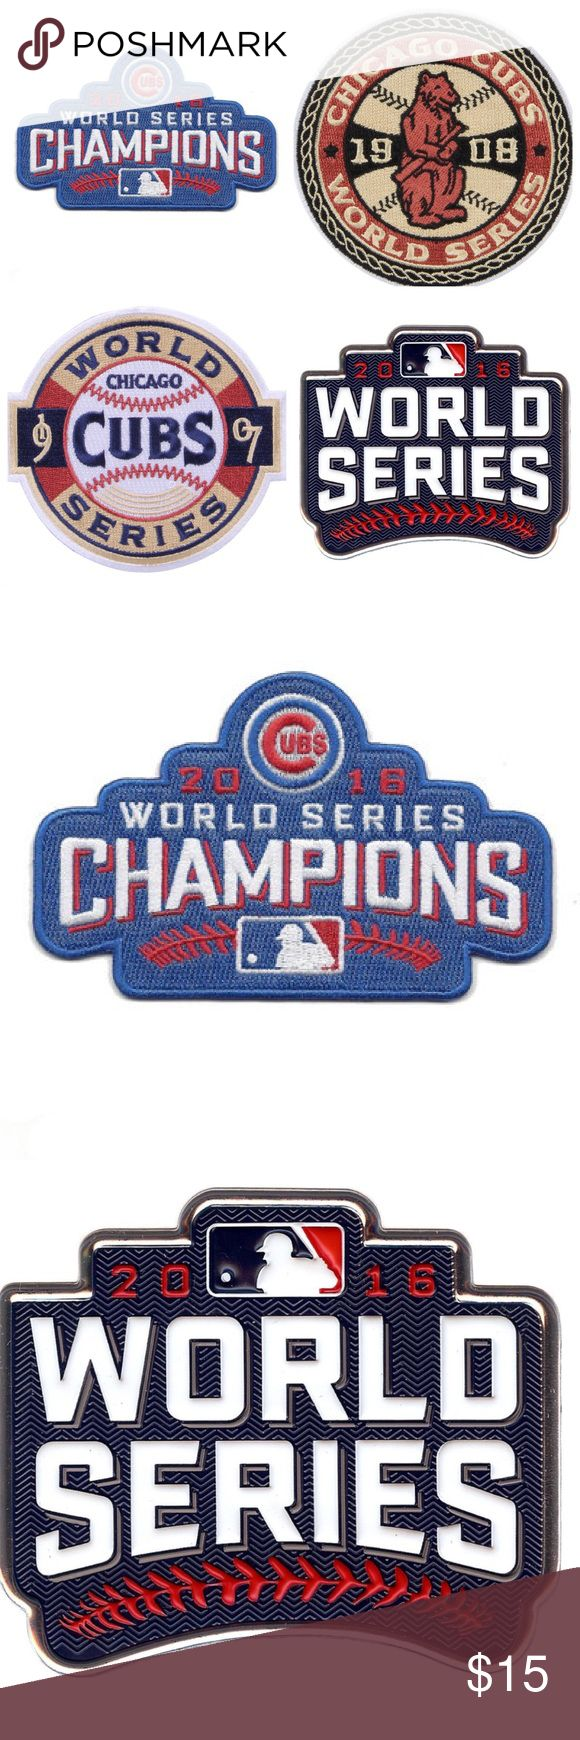 Chicago Cubs World Series Patch Collection (4) Looking for that awesome, inexpensive Christmas gift? Grab this Chicago Cubs World Series Patch Collection for that Diehard Cubbies fan in your life! This set includes the 2016 World Series patch, the 2016 World Series Champions patch,the 1907 World Series and the 1908 World Series patches. A unique set to add to your collection at a great price. These retail from $10-$20 EACH. Grab them all for $15 shipped. Please check my listings for more…